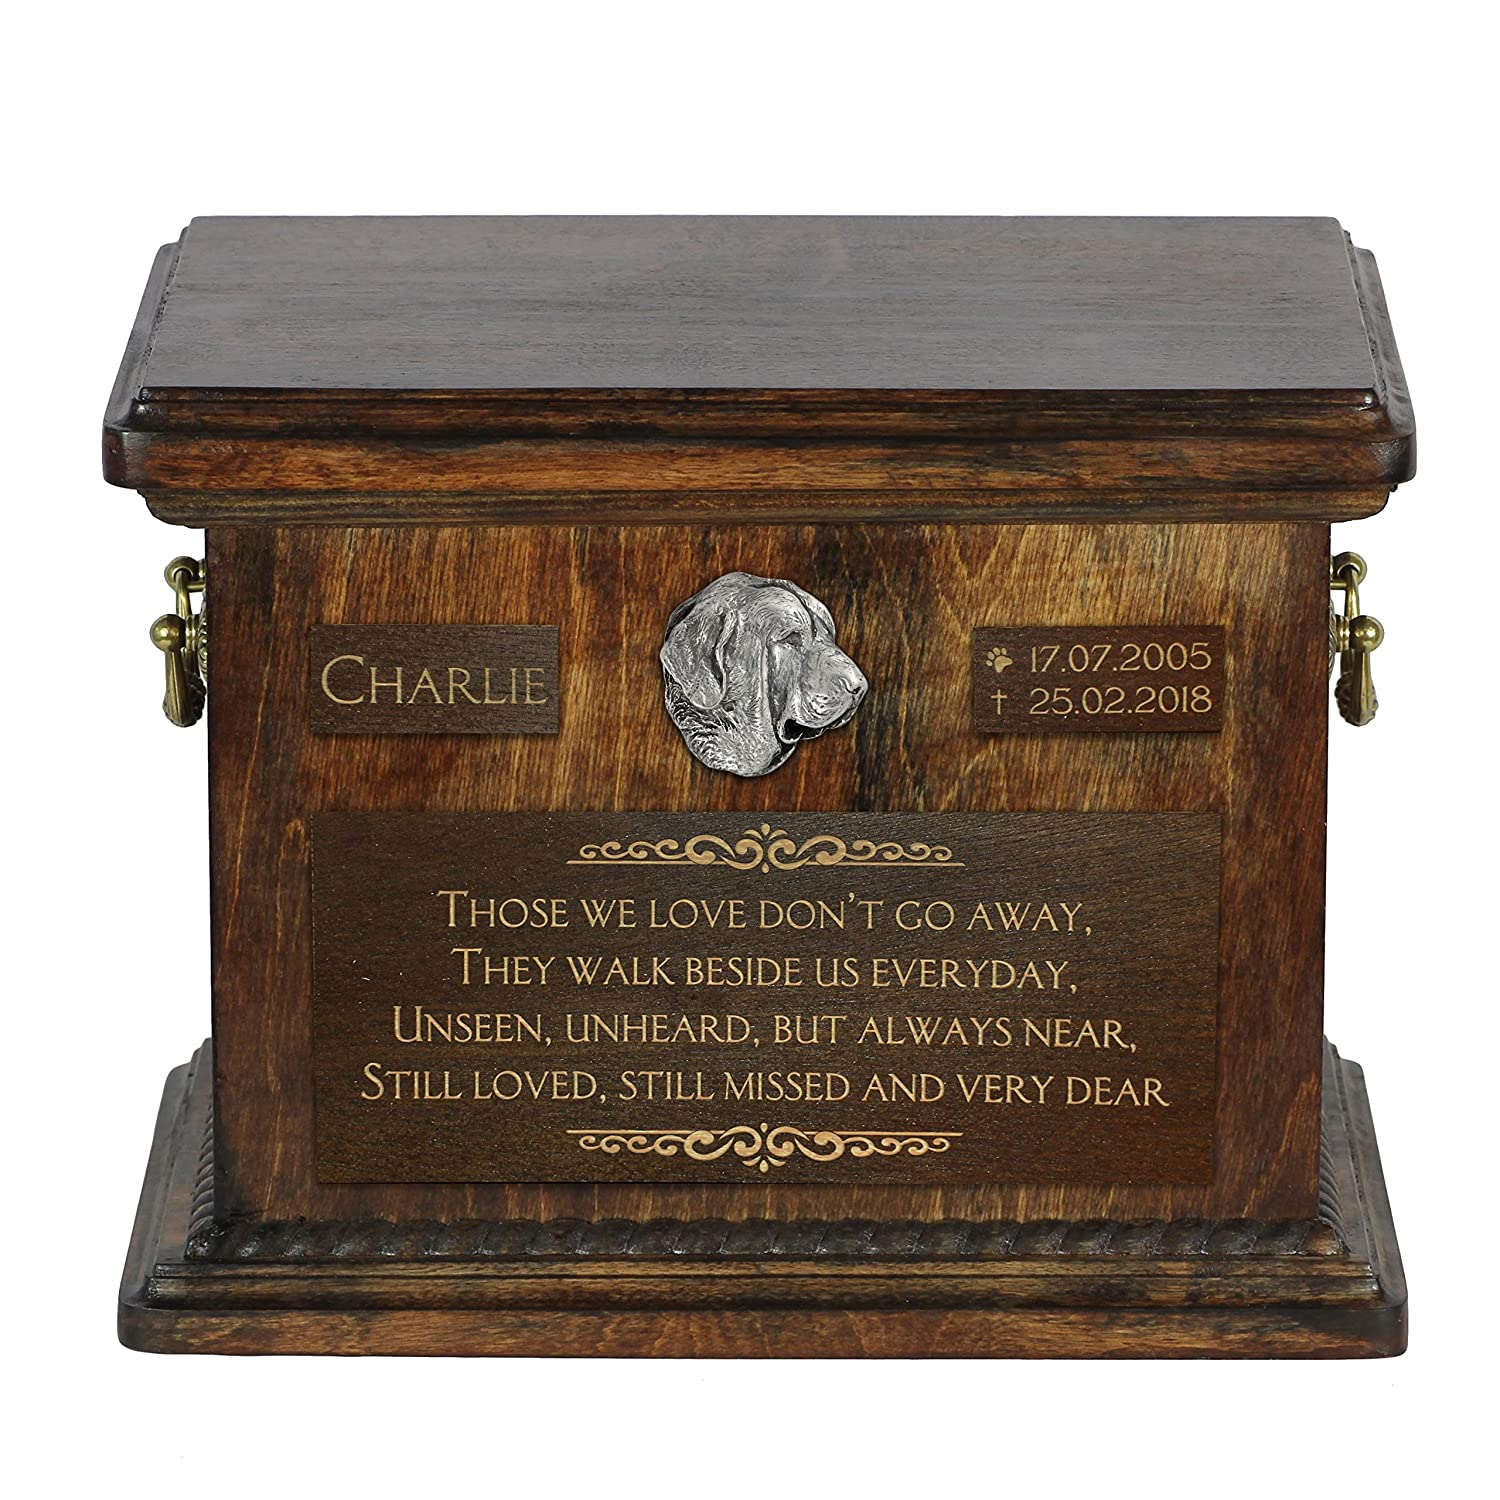 ArtDog Ltd. Spanish Mastiff, urn for dog's ashes with relief and sentence with your dog name and date